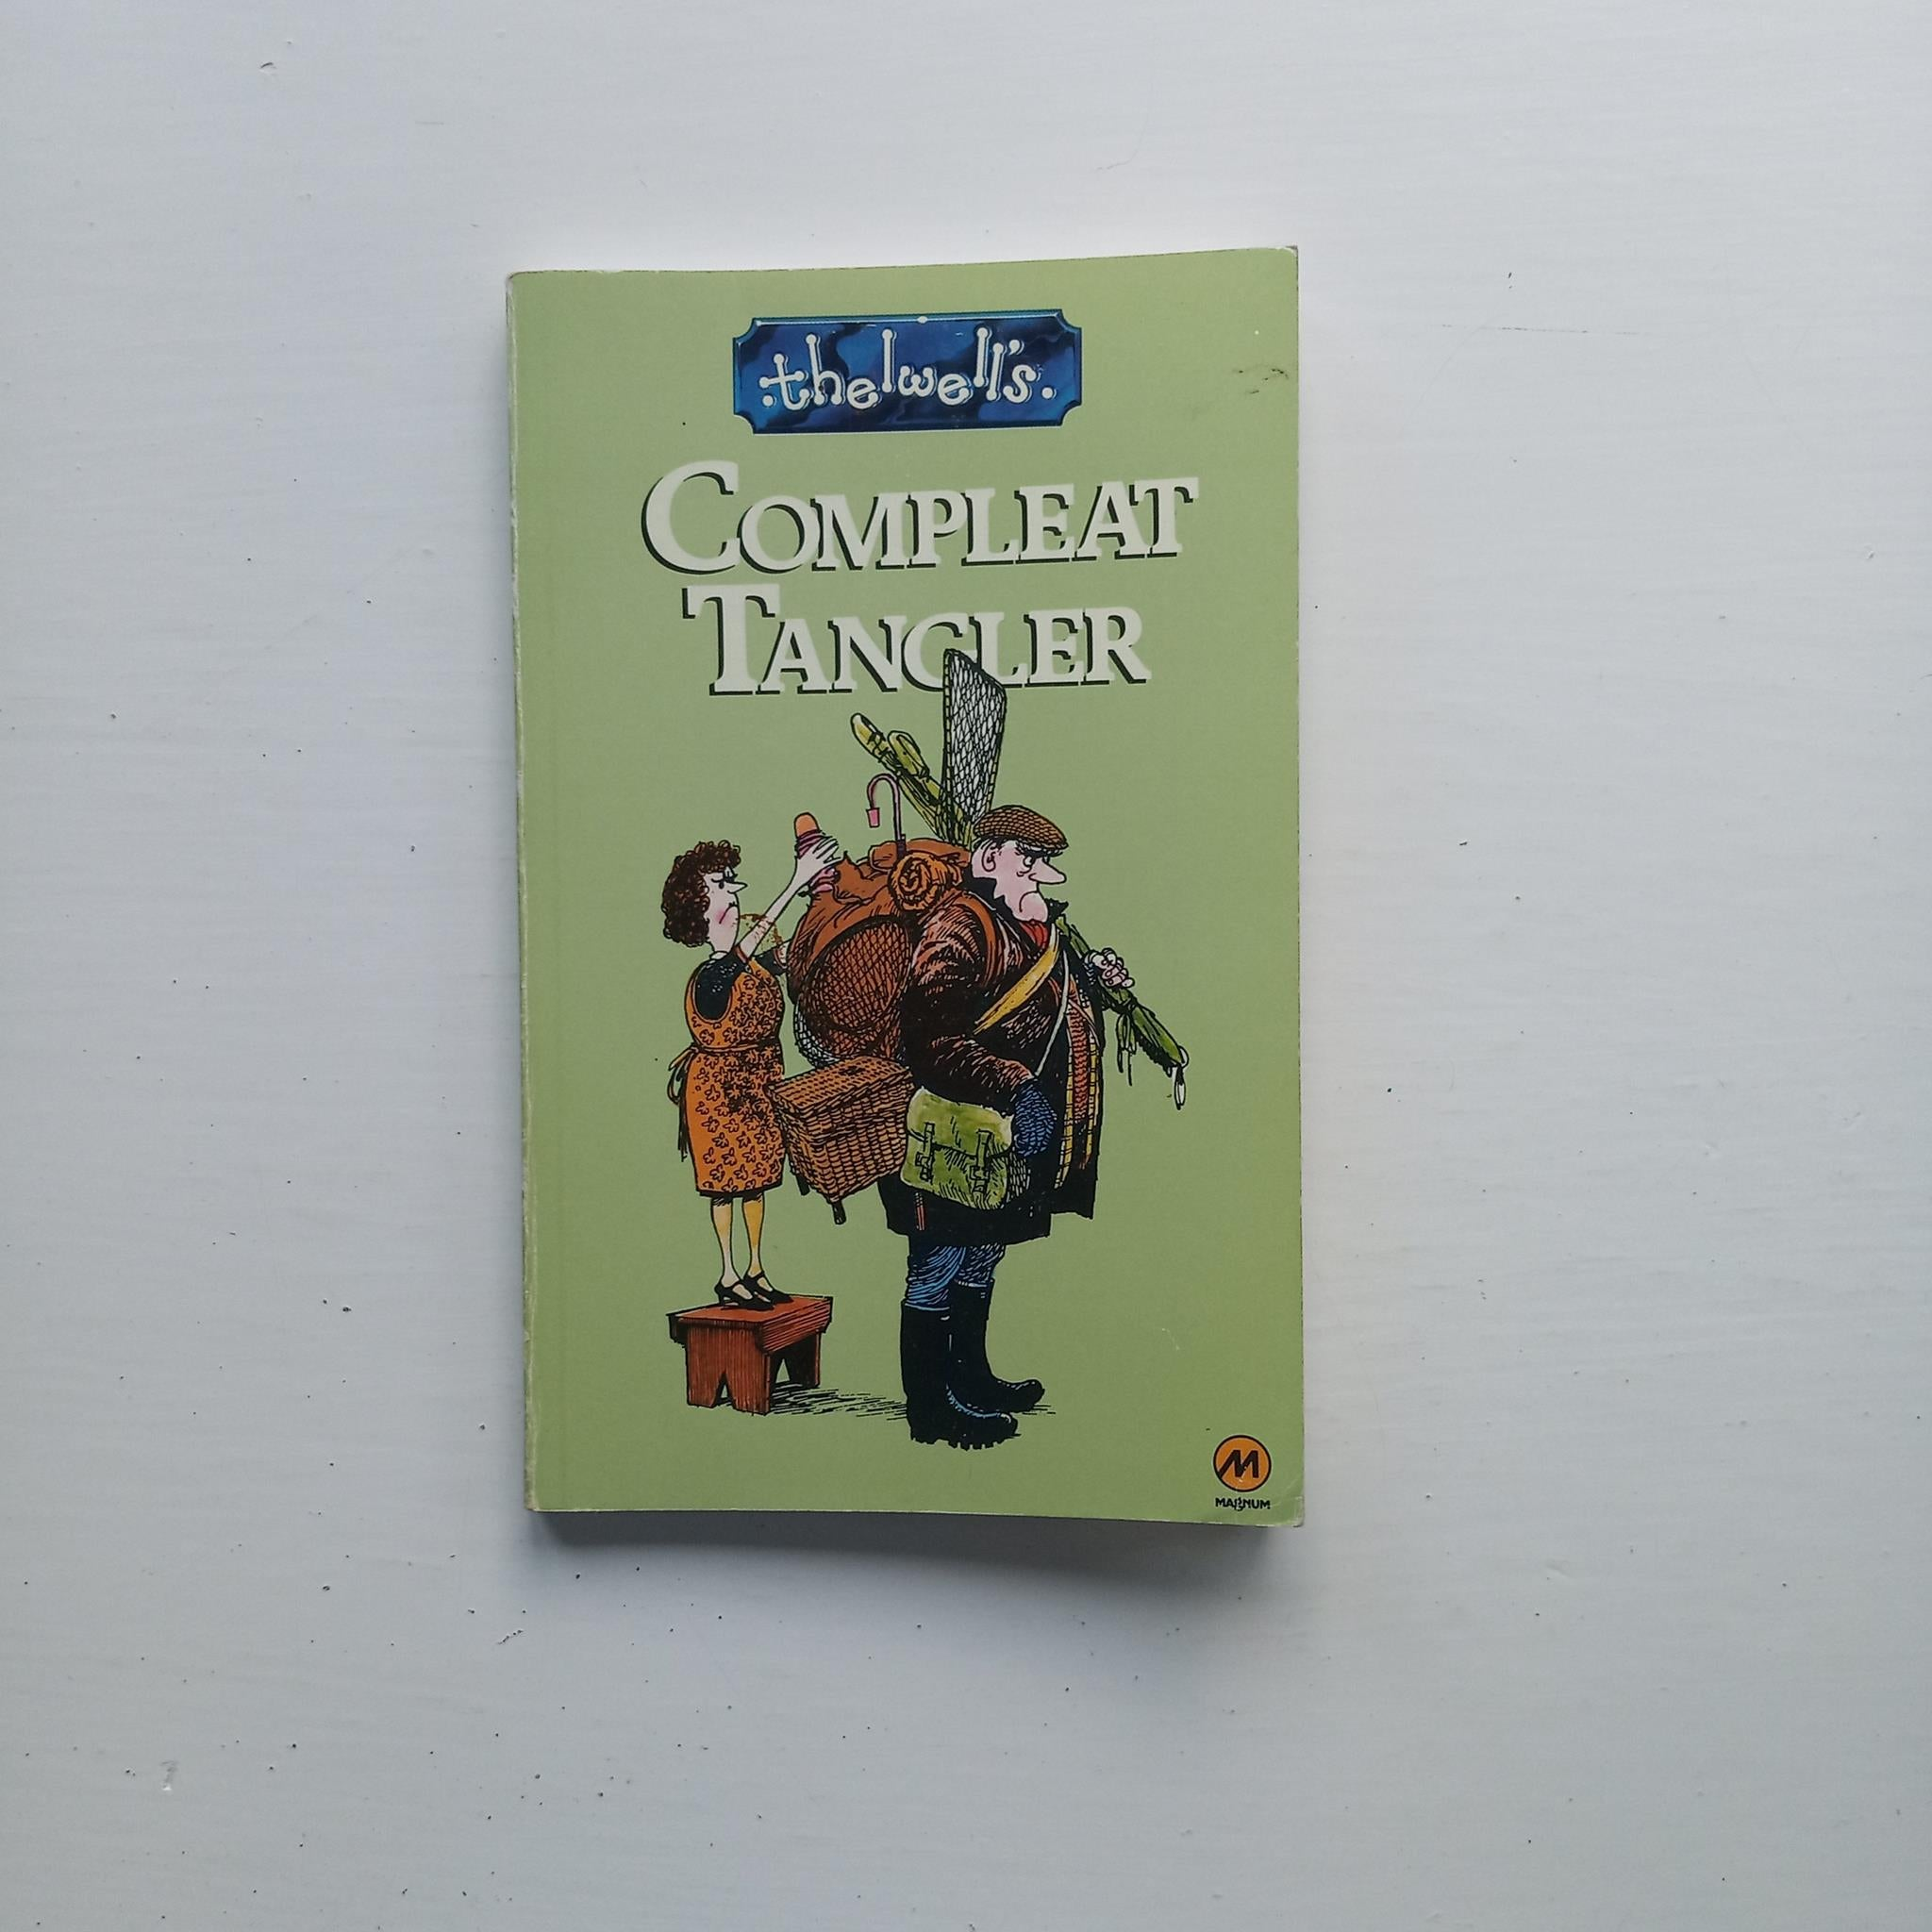 Thelwell's Compleat Tangler by Norman Thelwell